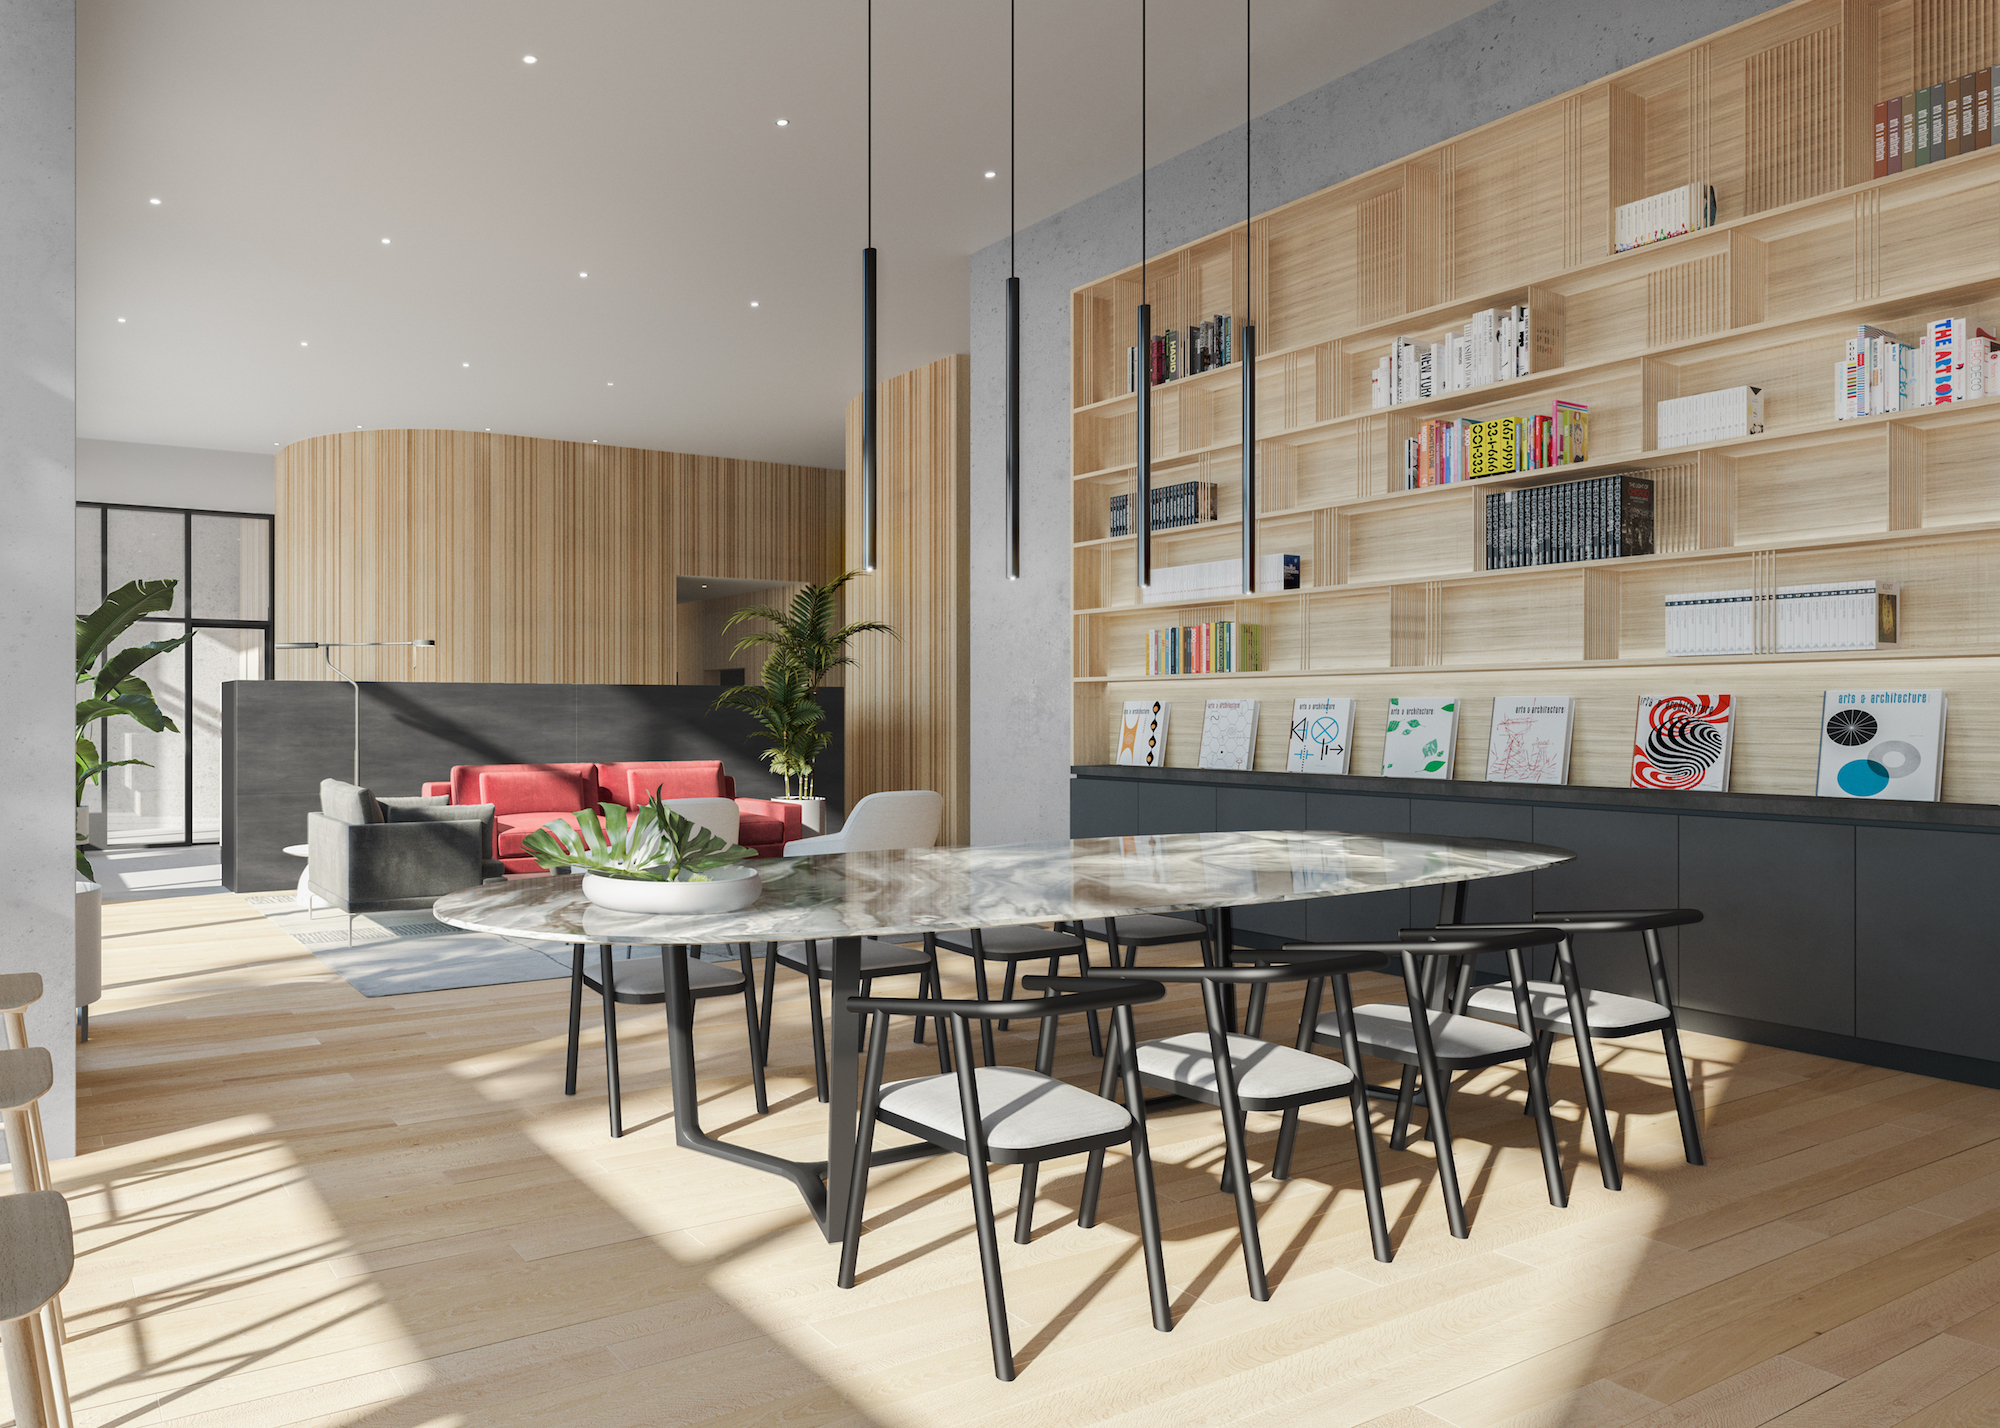 Junction House's amenities include an open lobby that functions as a co-working space.